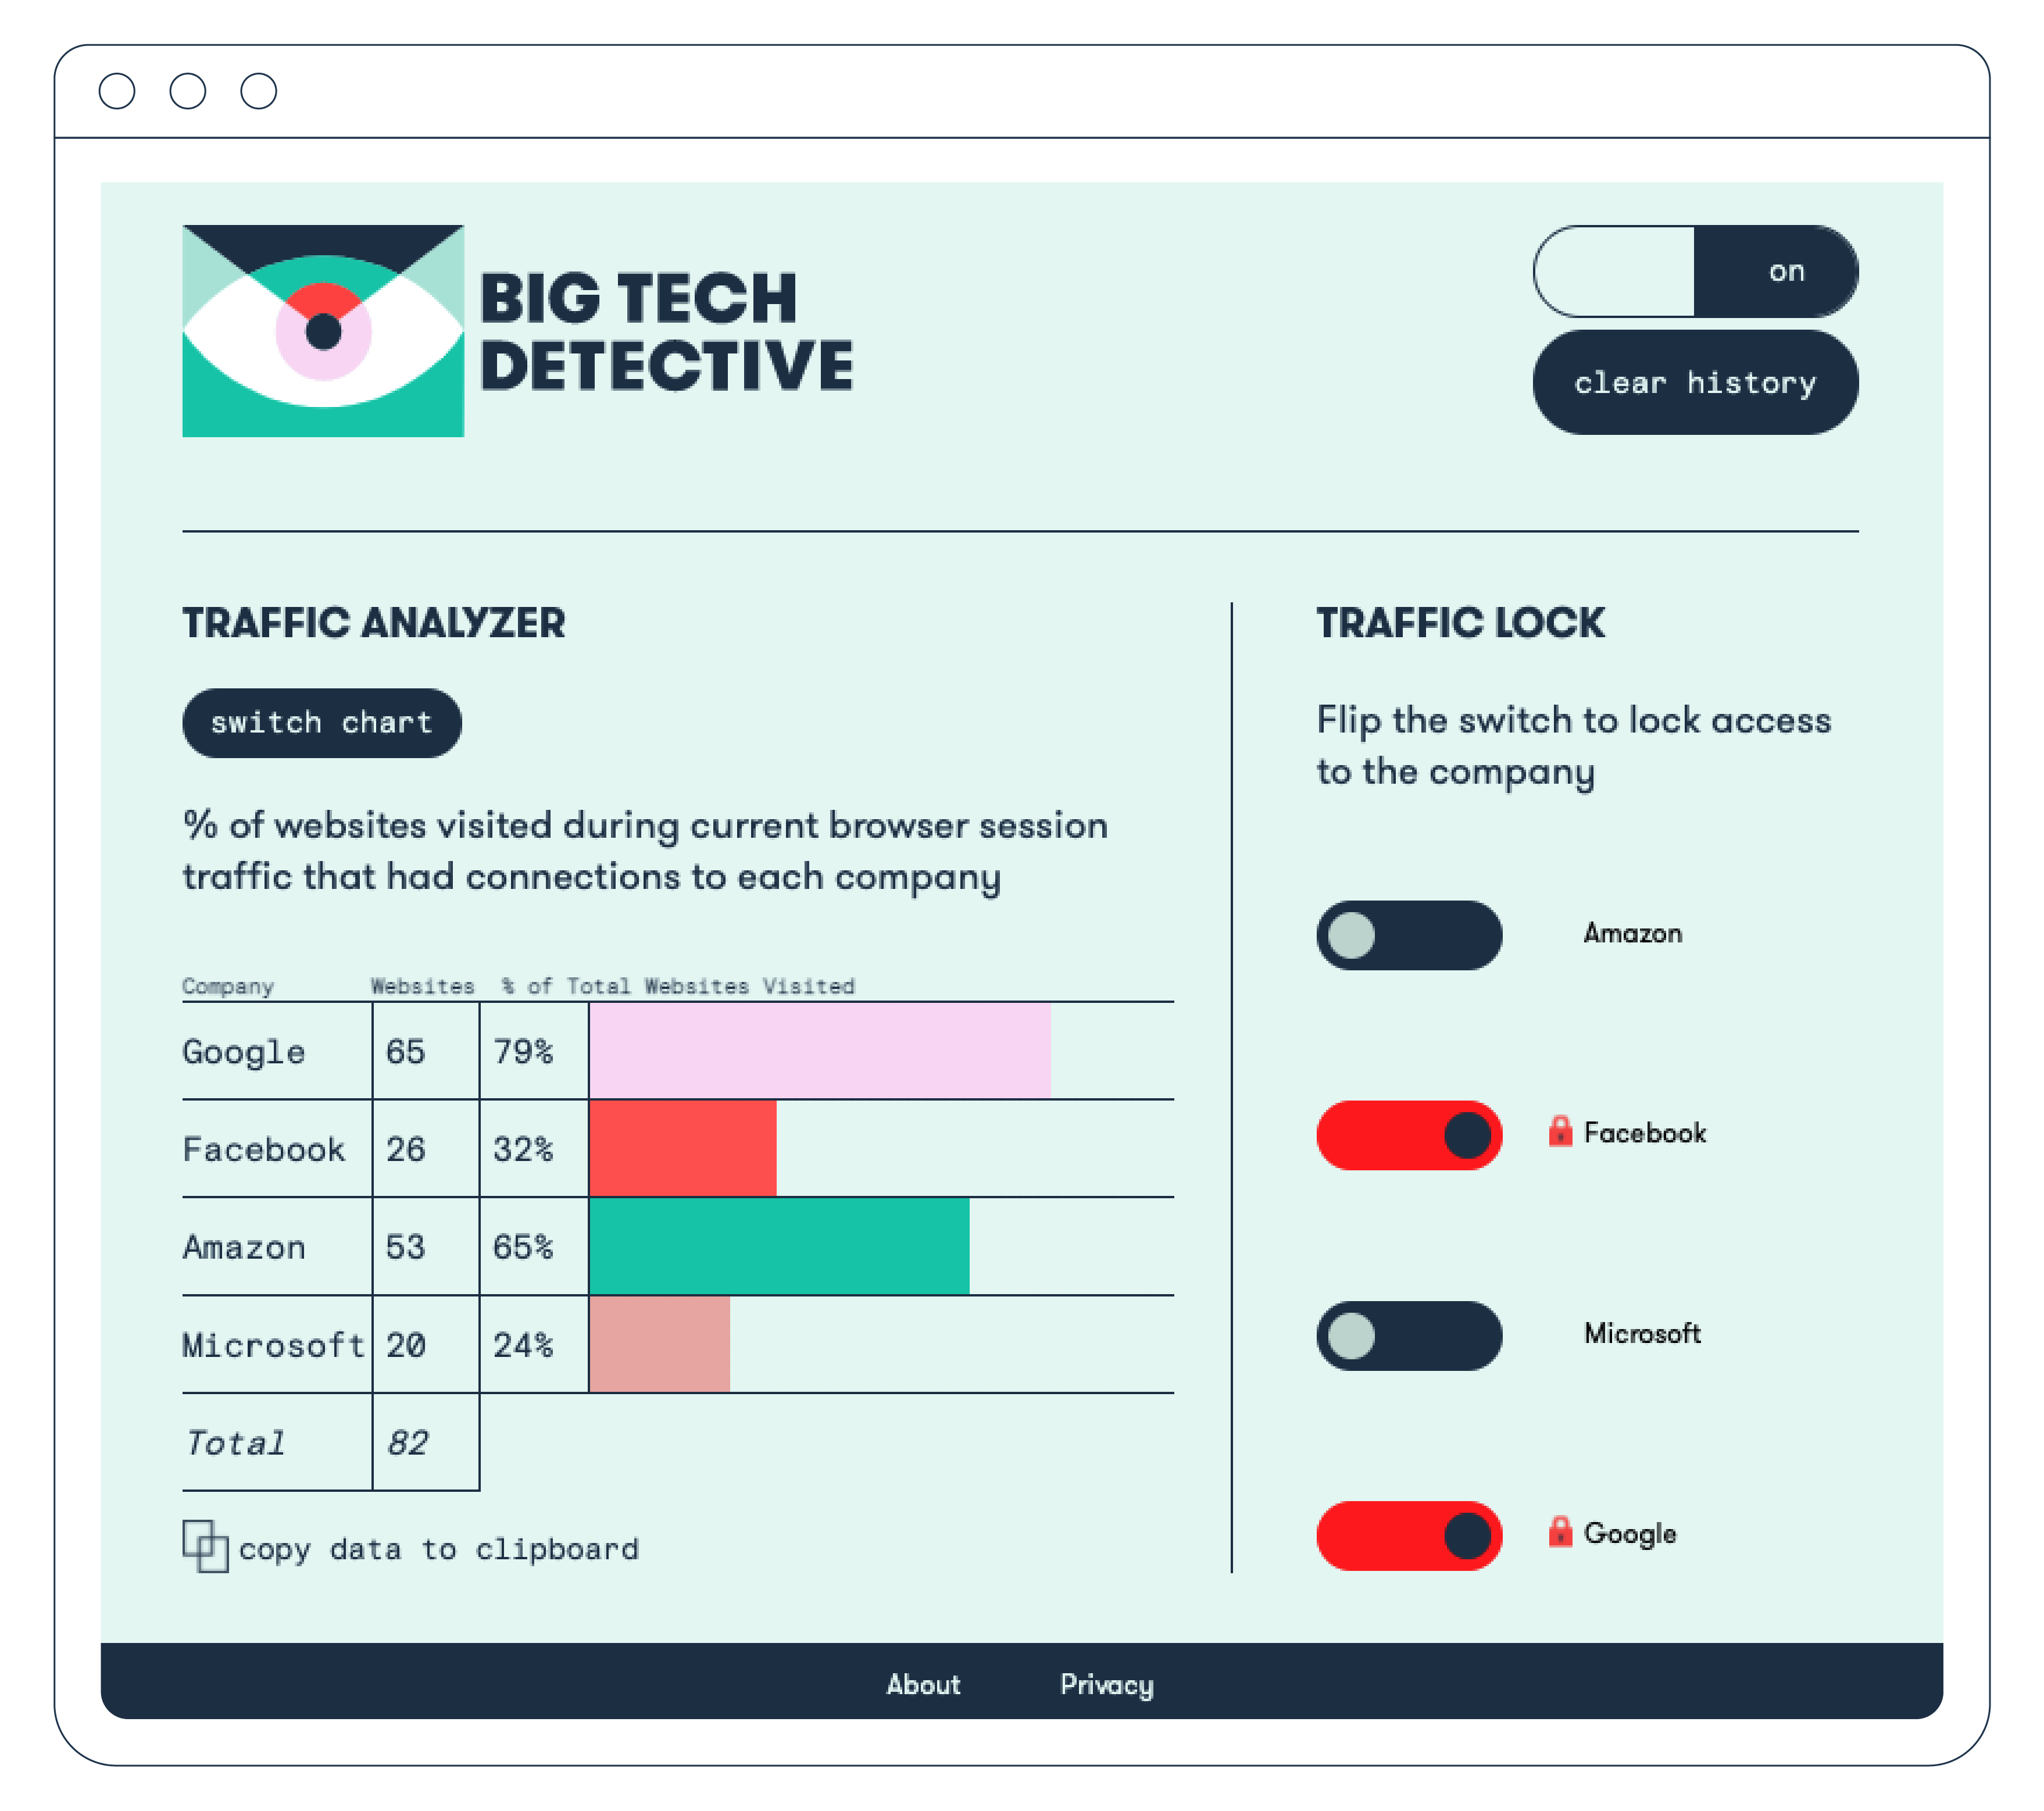 big tech detective interface